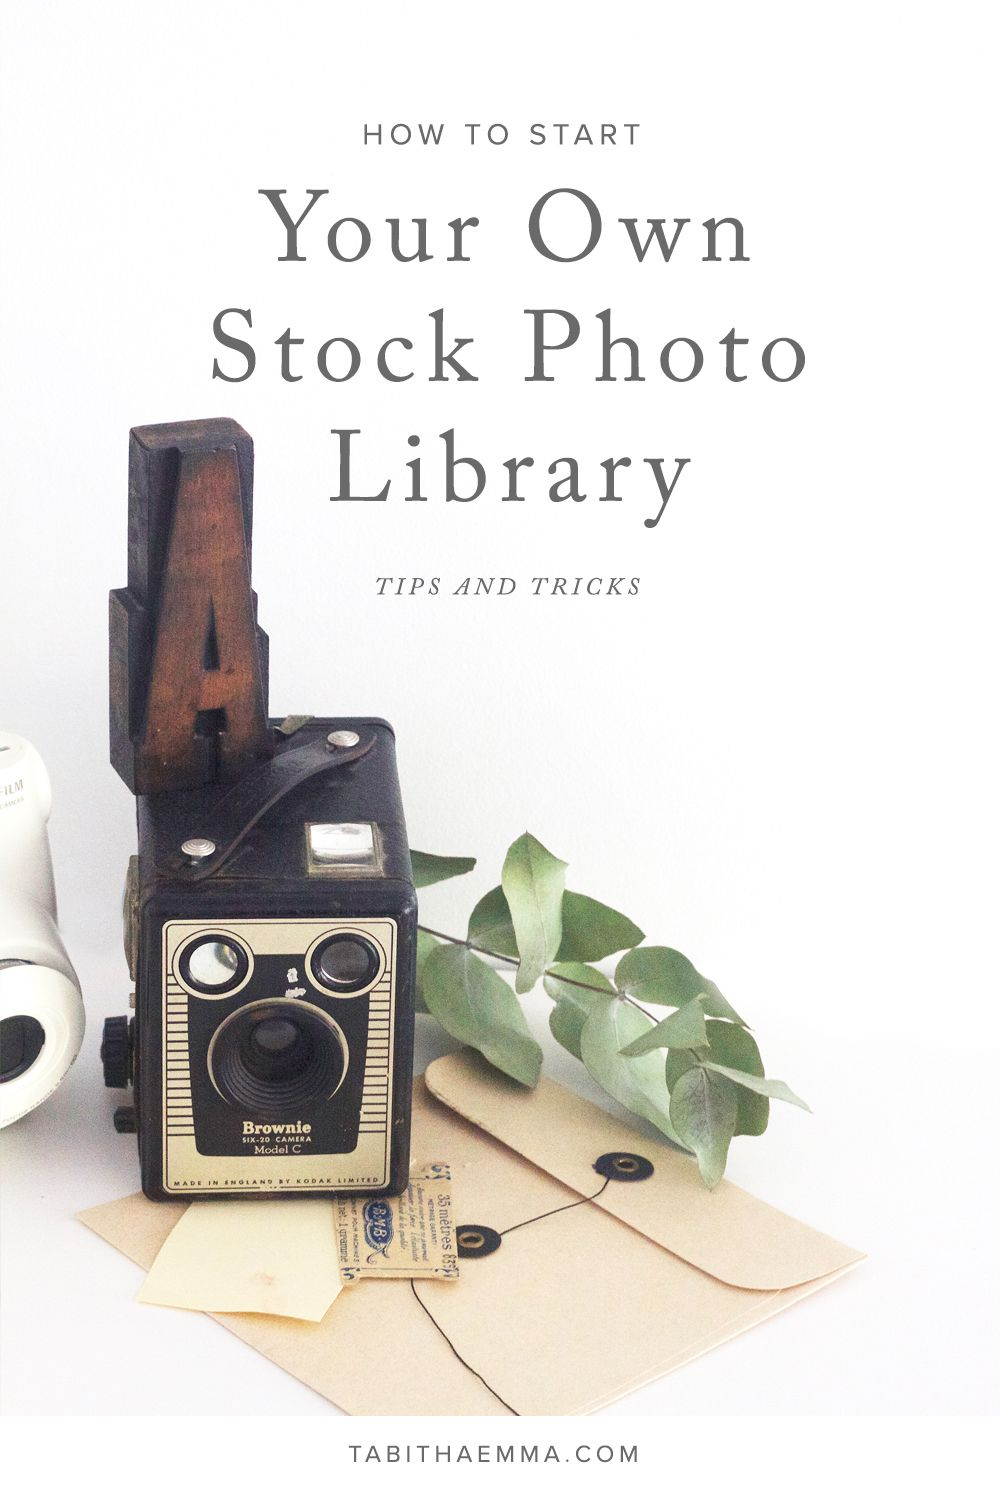 How to Start your own Personal Branded Stock Photo Library #photolibrary